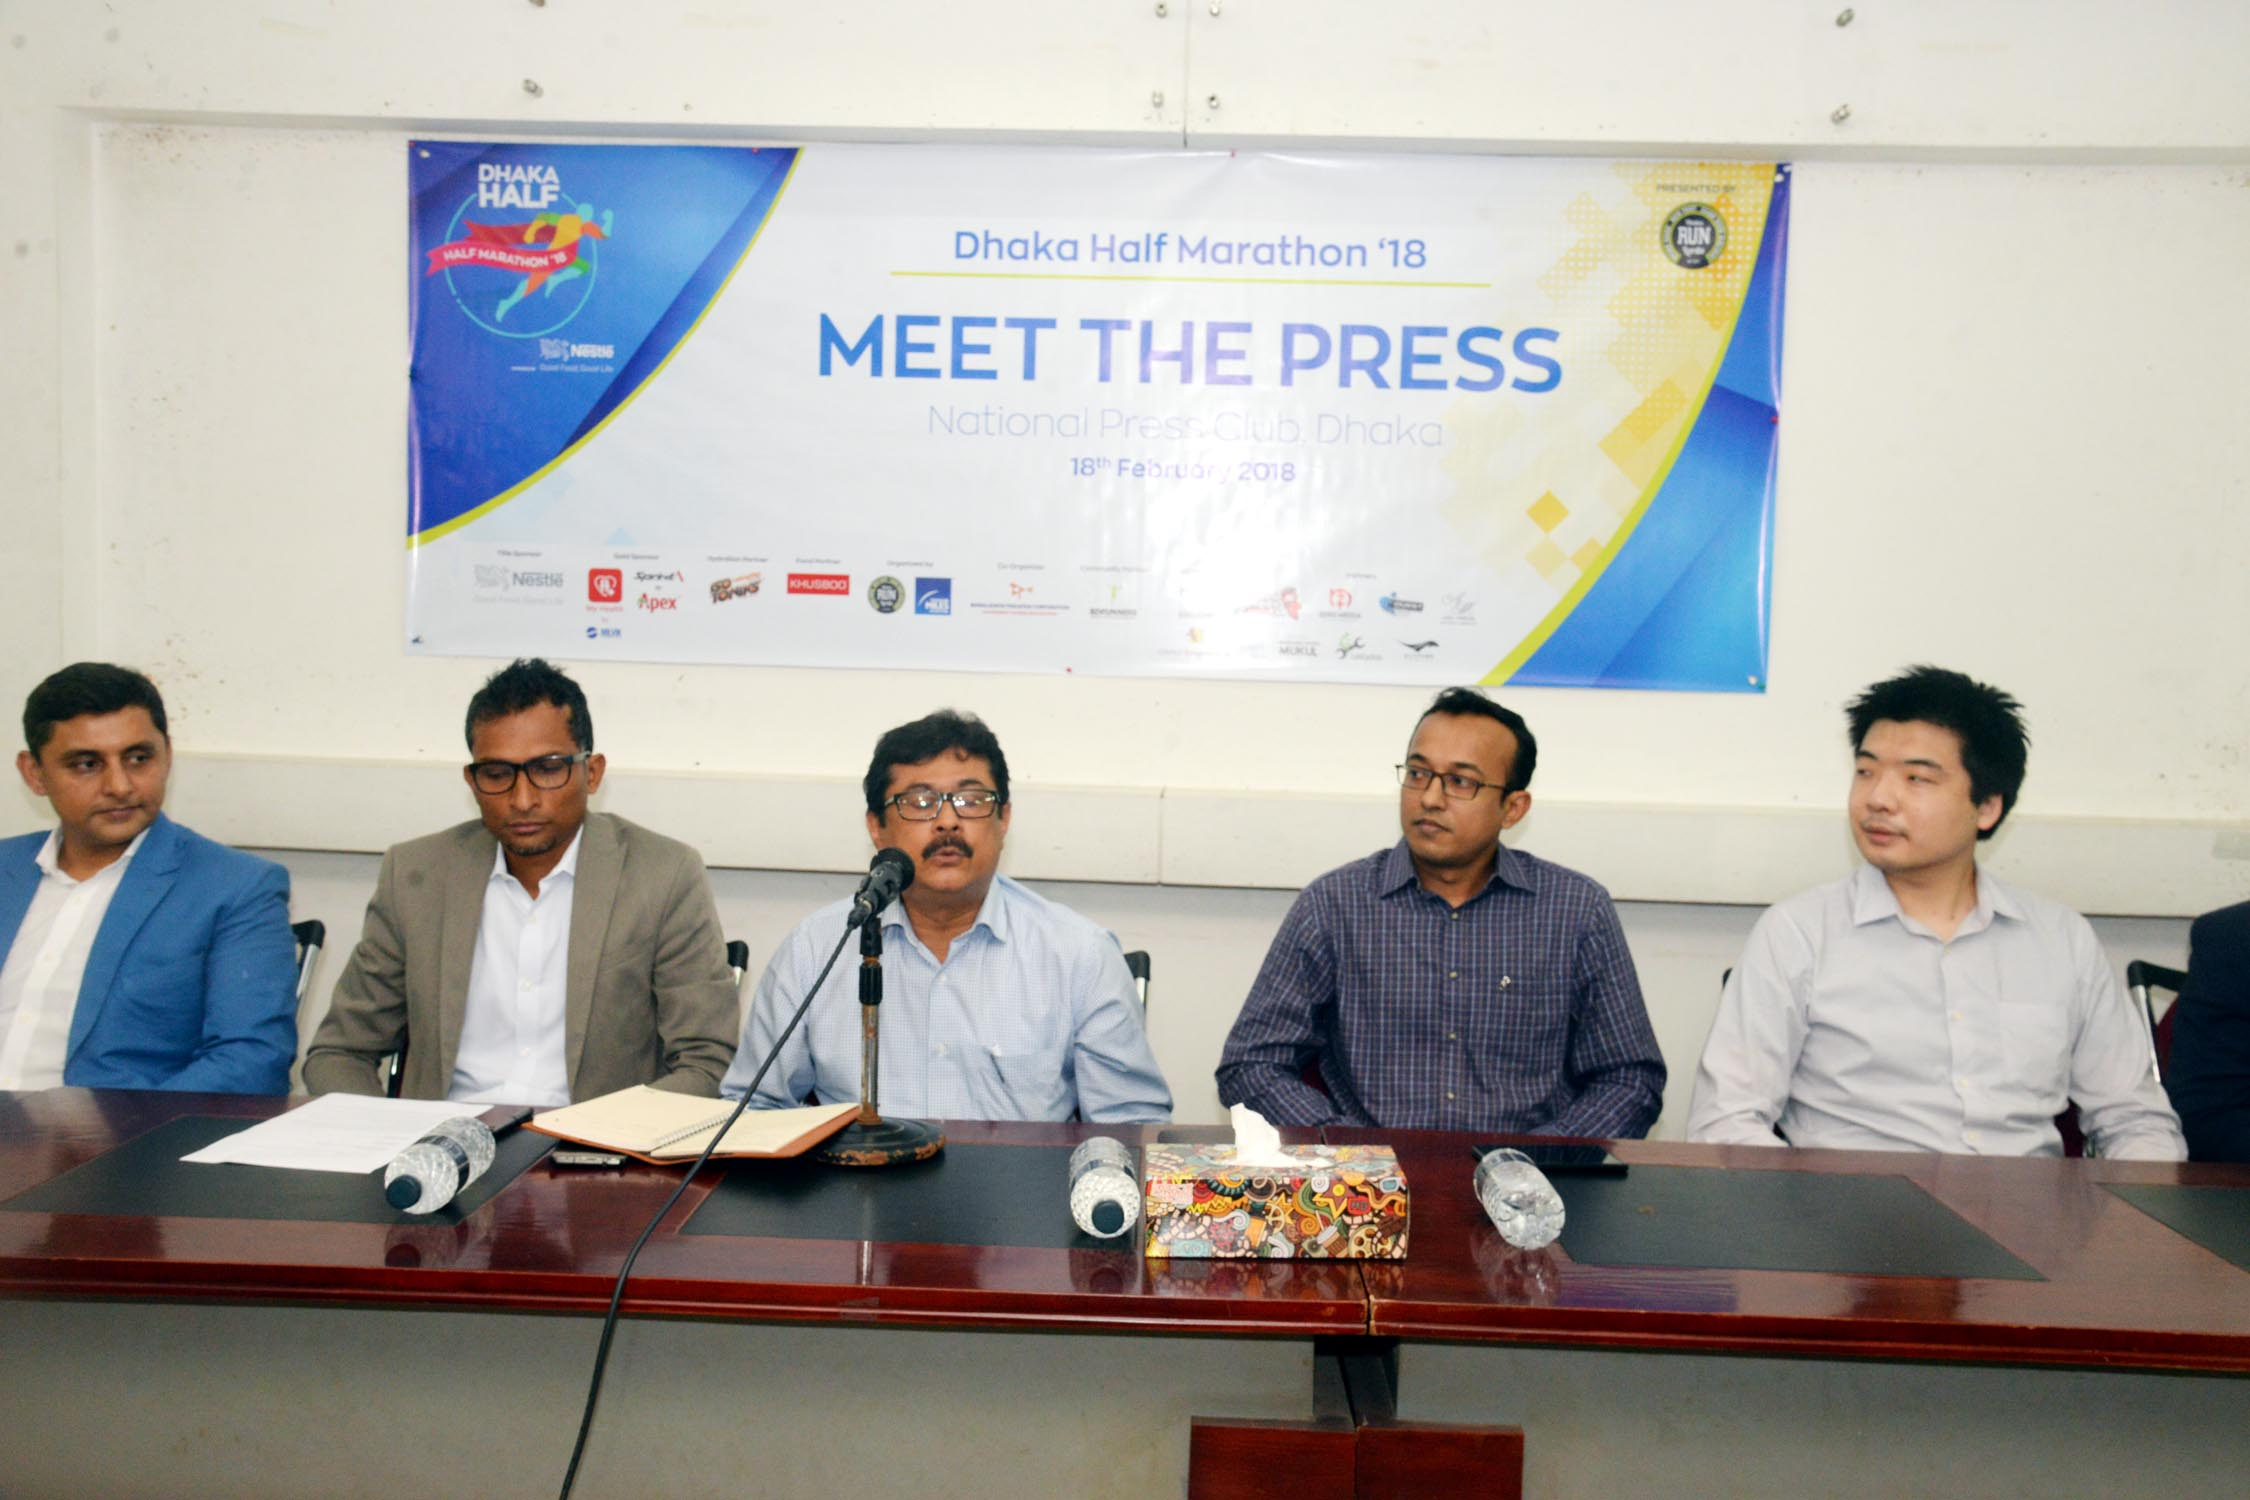 Dhaka Half Marathon to be held on March 2